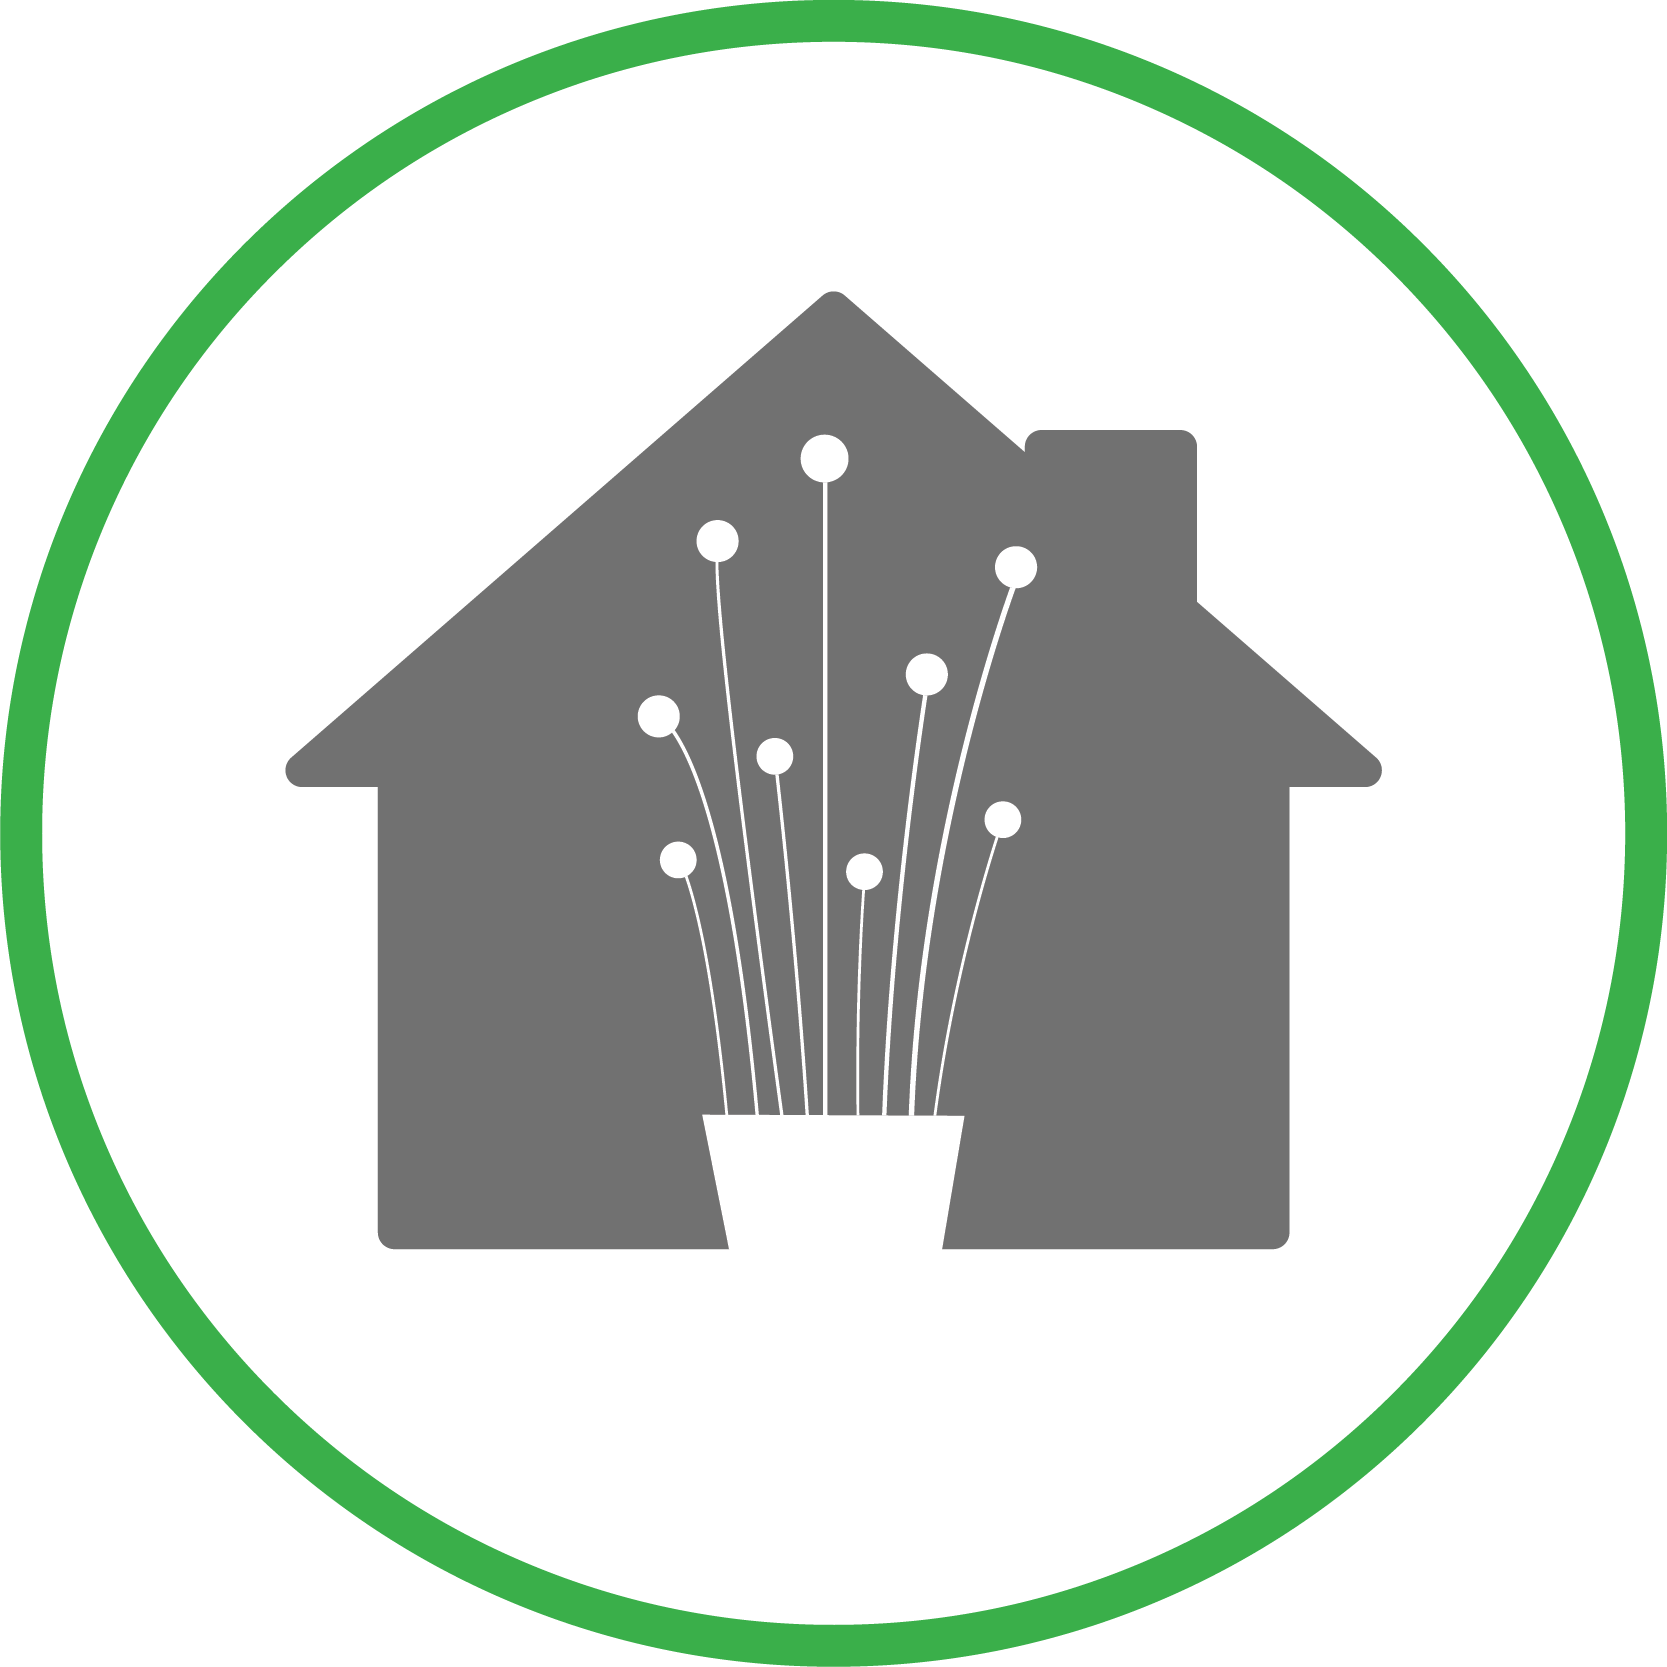 Icon Image | Fiber-to-the-home